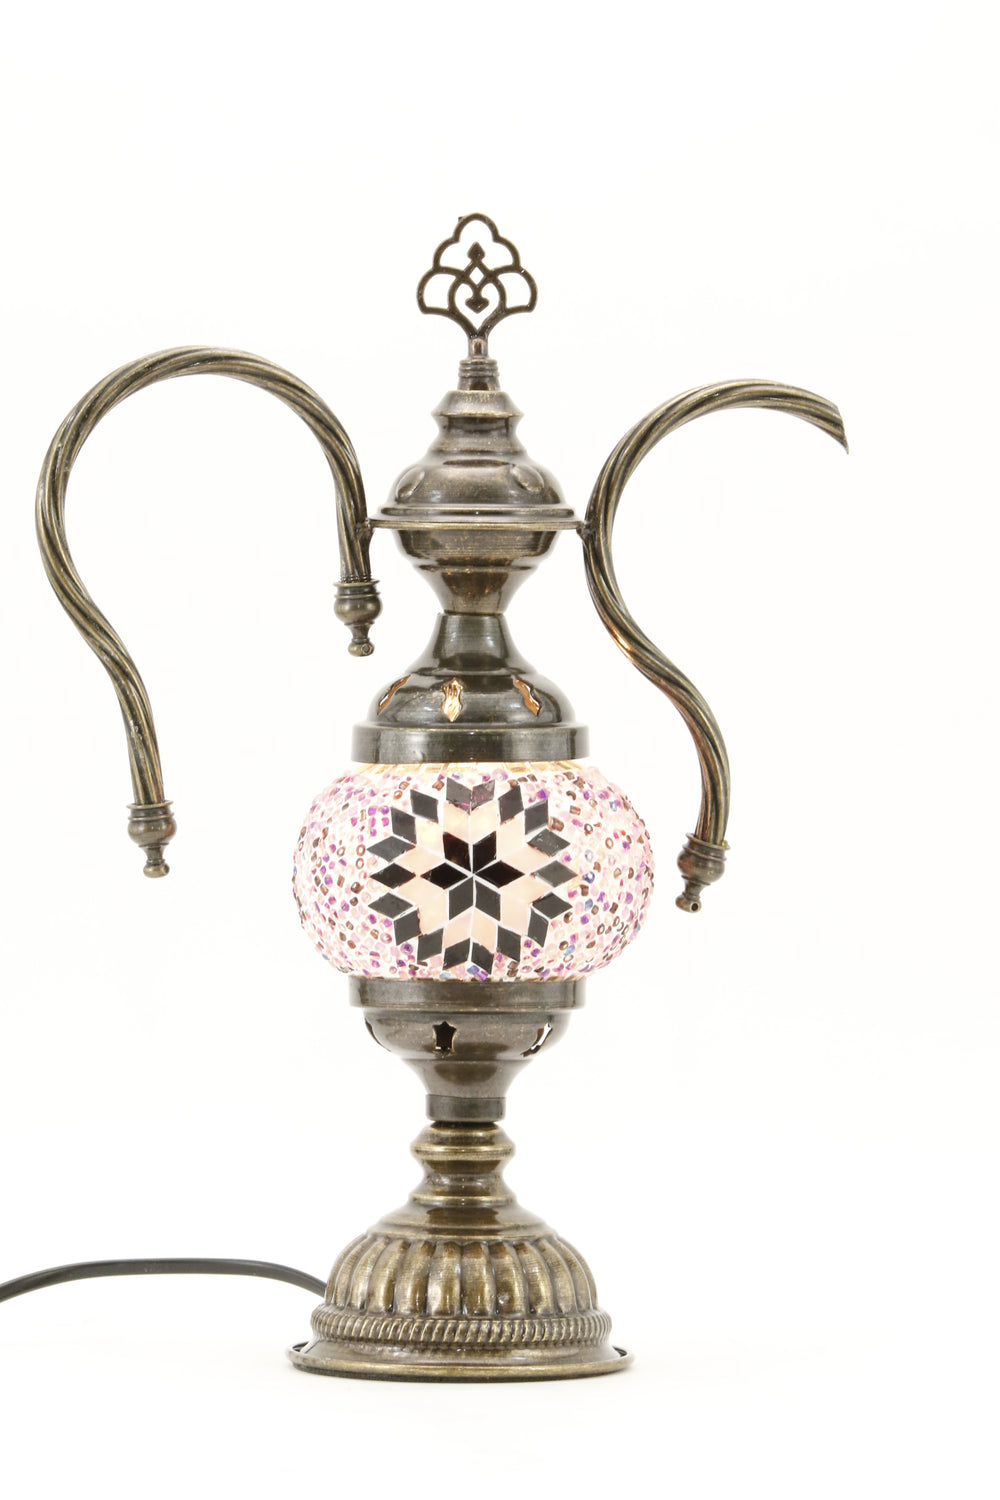 TURKISH MOSAIC GENIE BOTTLE TABLE LAMP MAUVISH PINK -TURNED ON